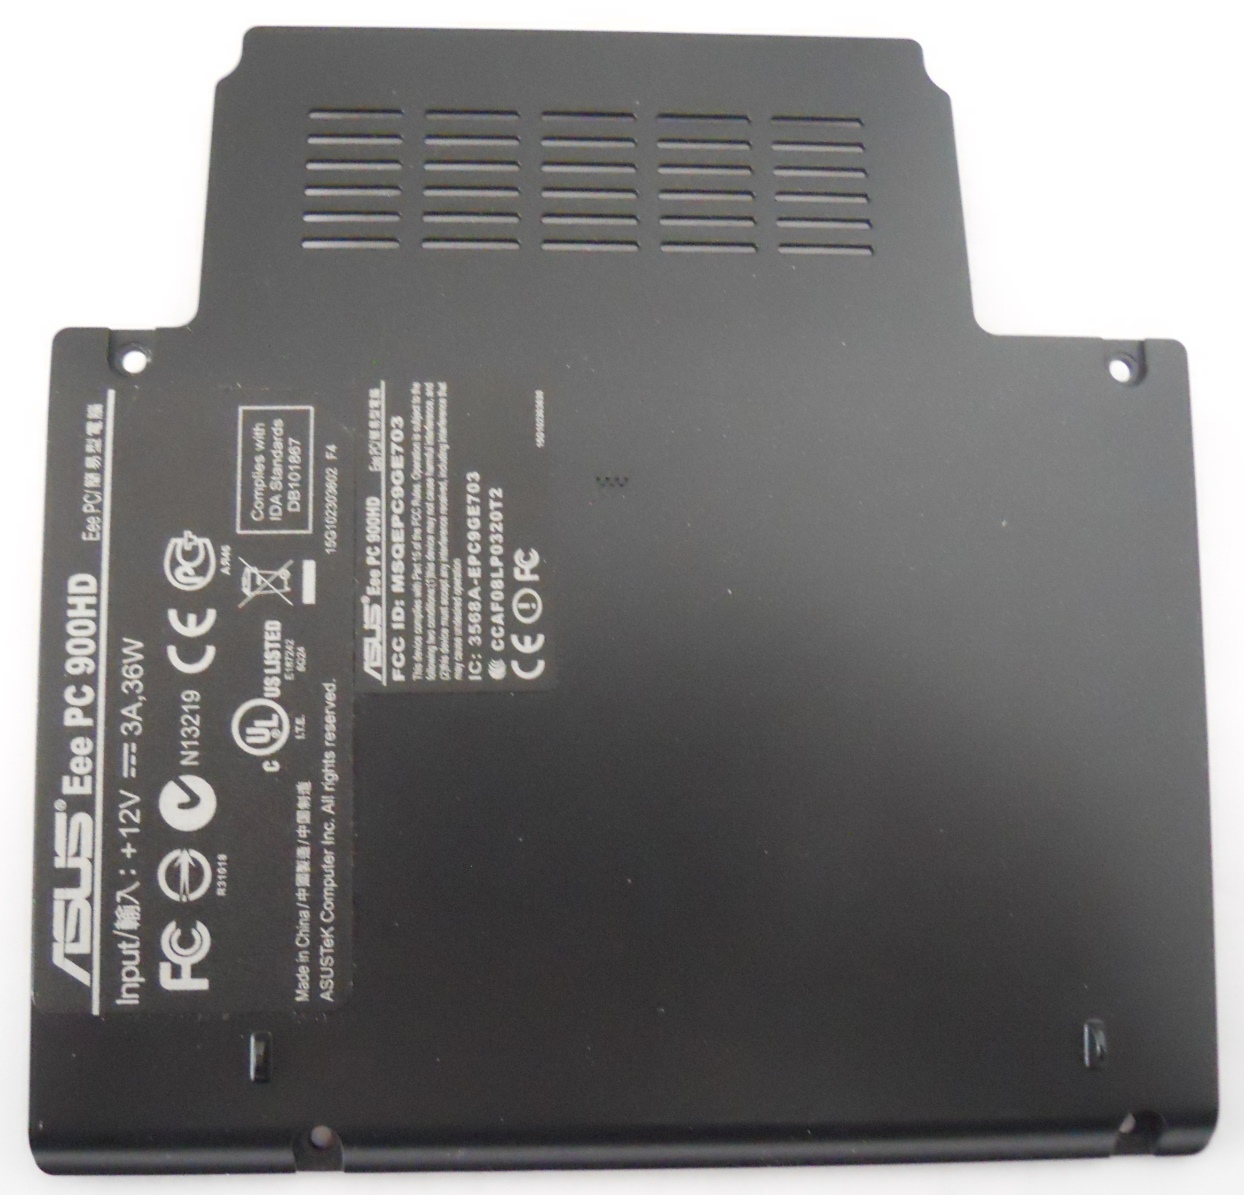 Asus Eee PC 900HD hard disk and memory cover